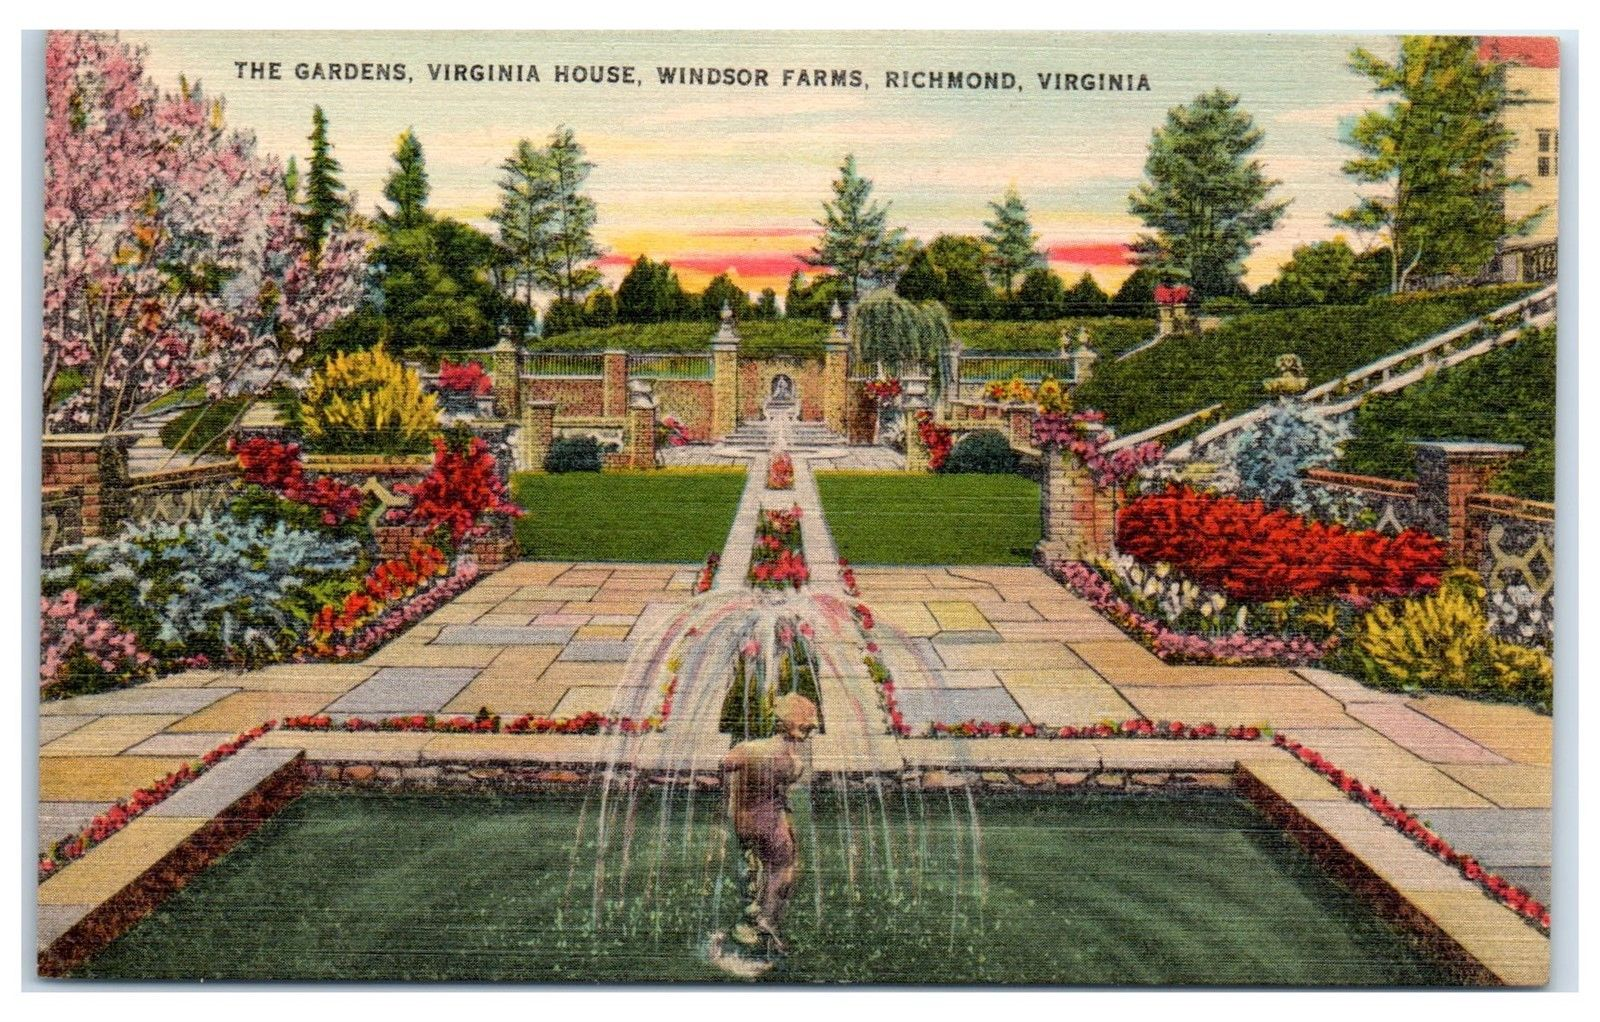 Mid-1900s The Gardens, Virginia House, Windsor Farms, Richmond, VA ...